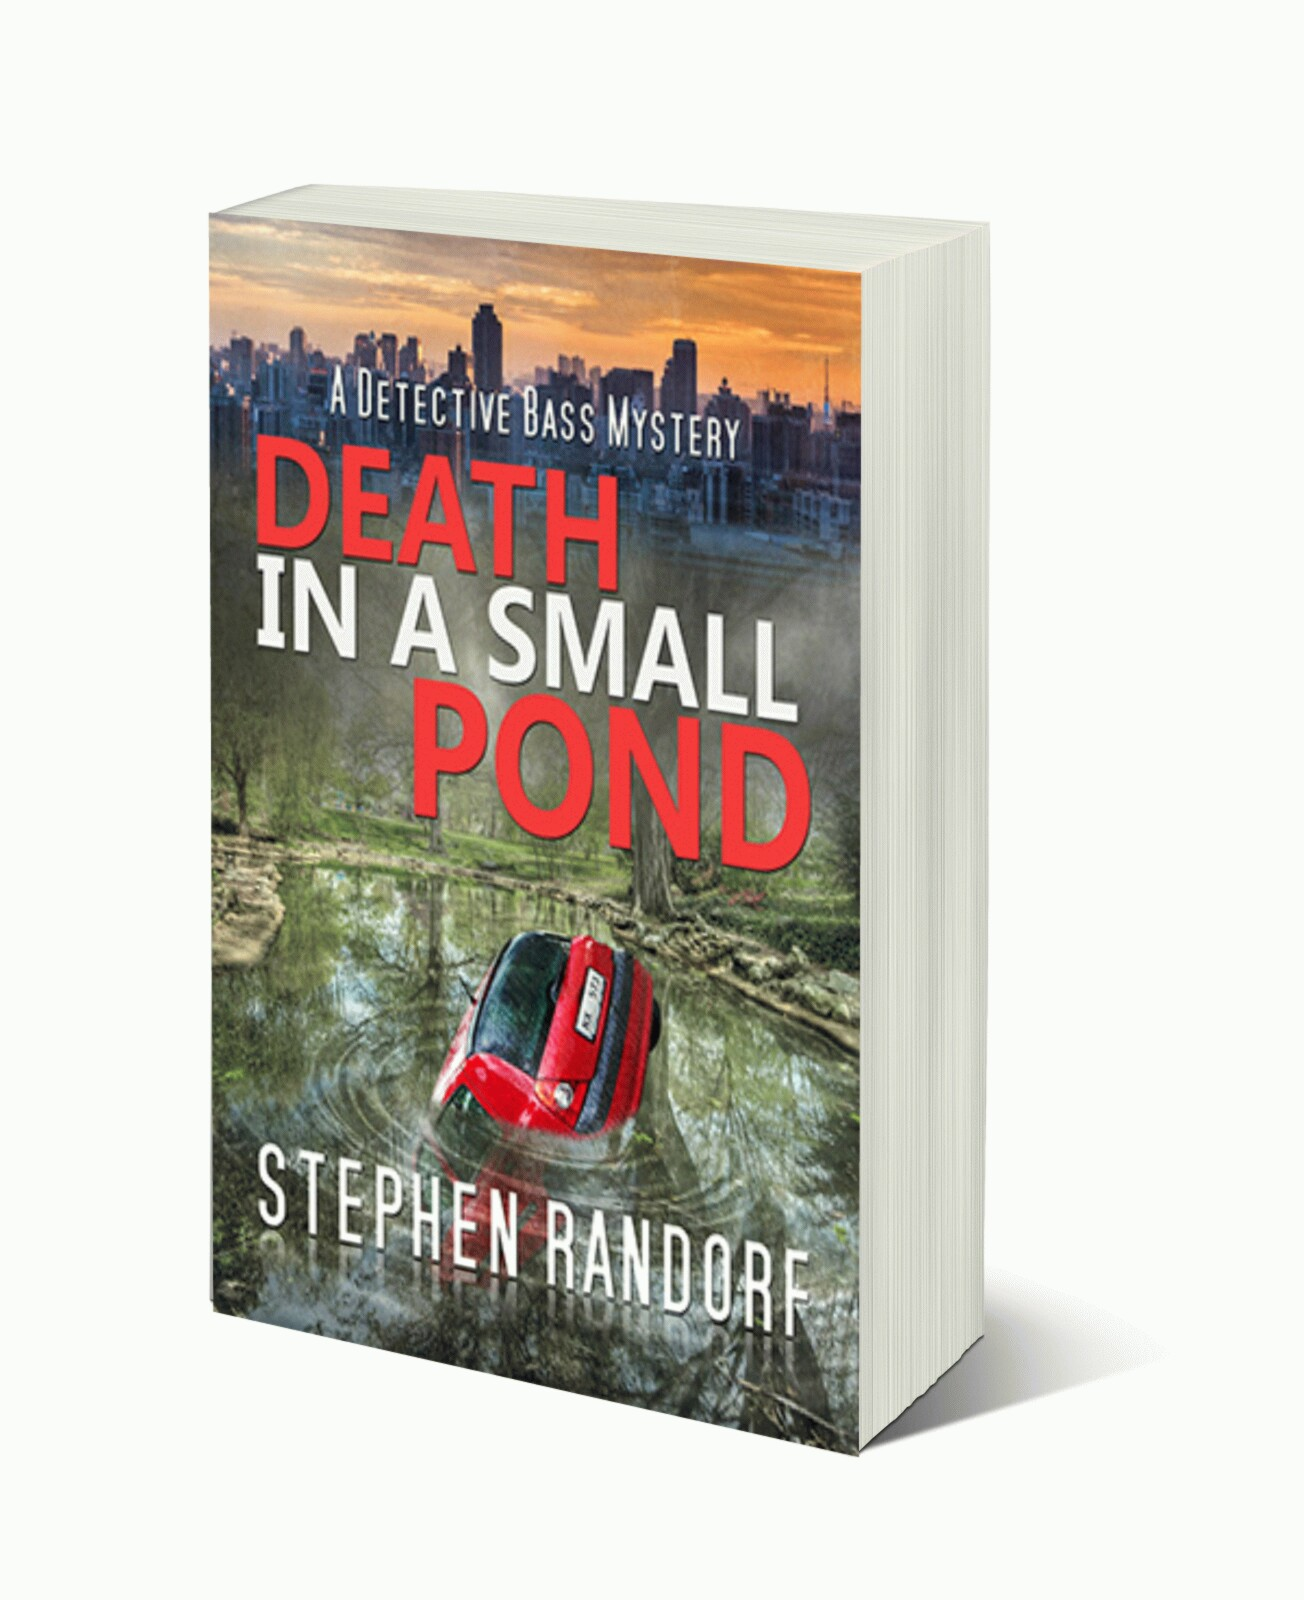 Book List   The Detective Bass Mystery Series